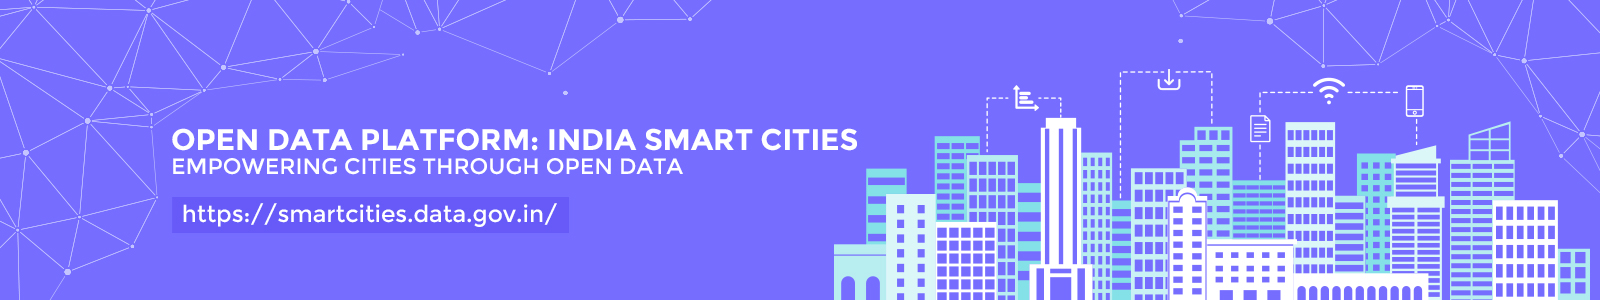 Banner of Smart Cities Data Portal